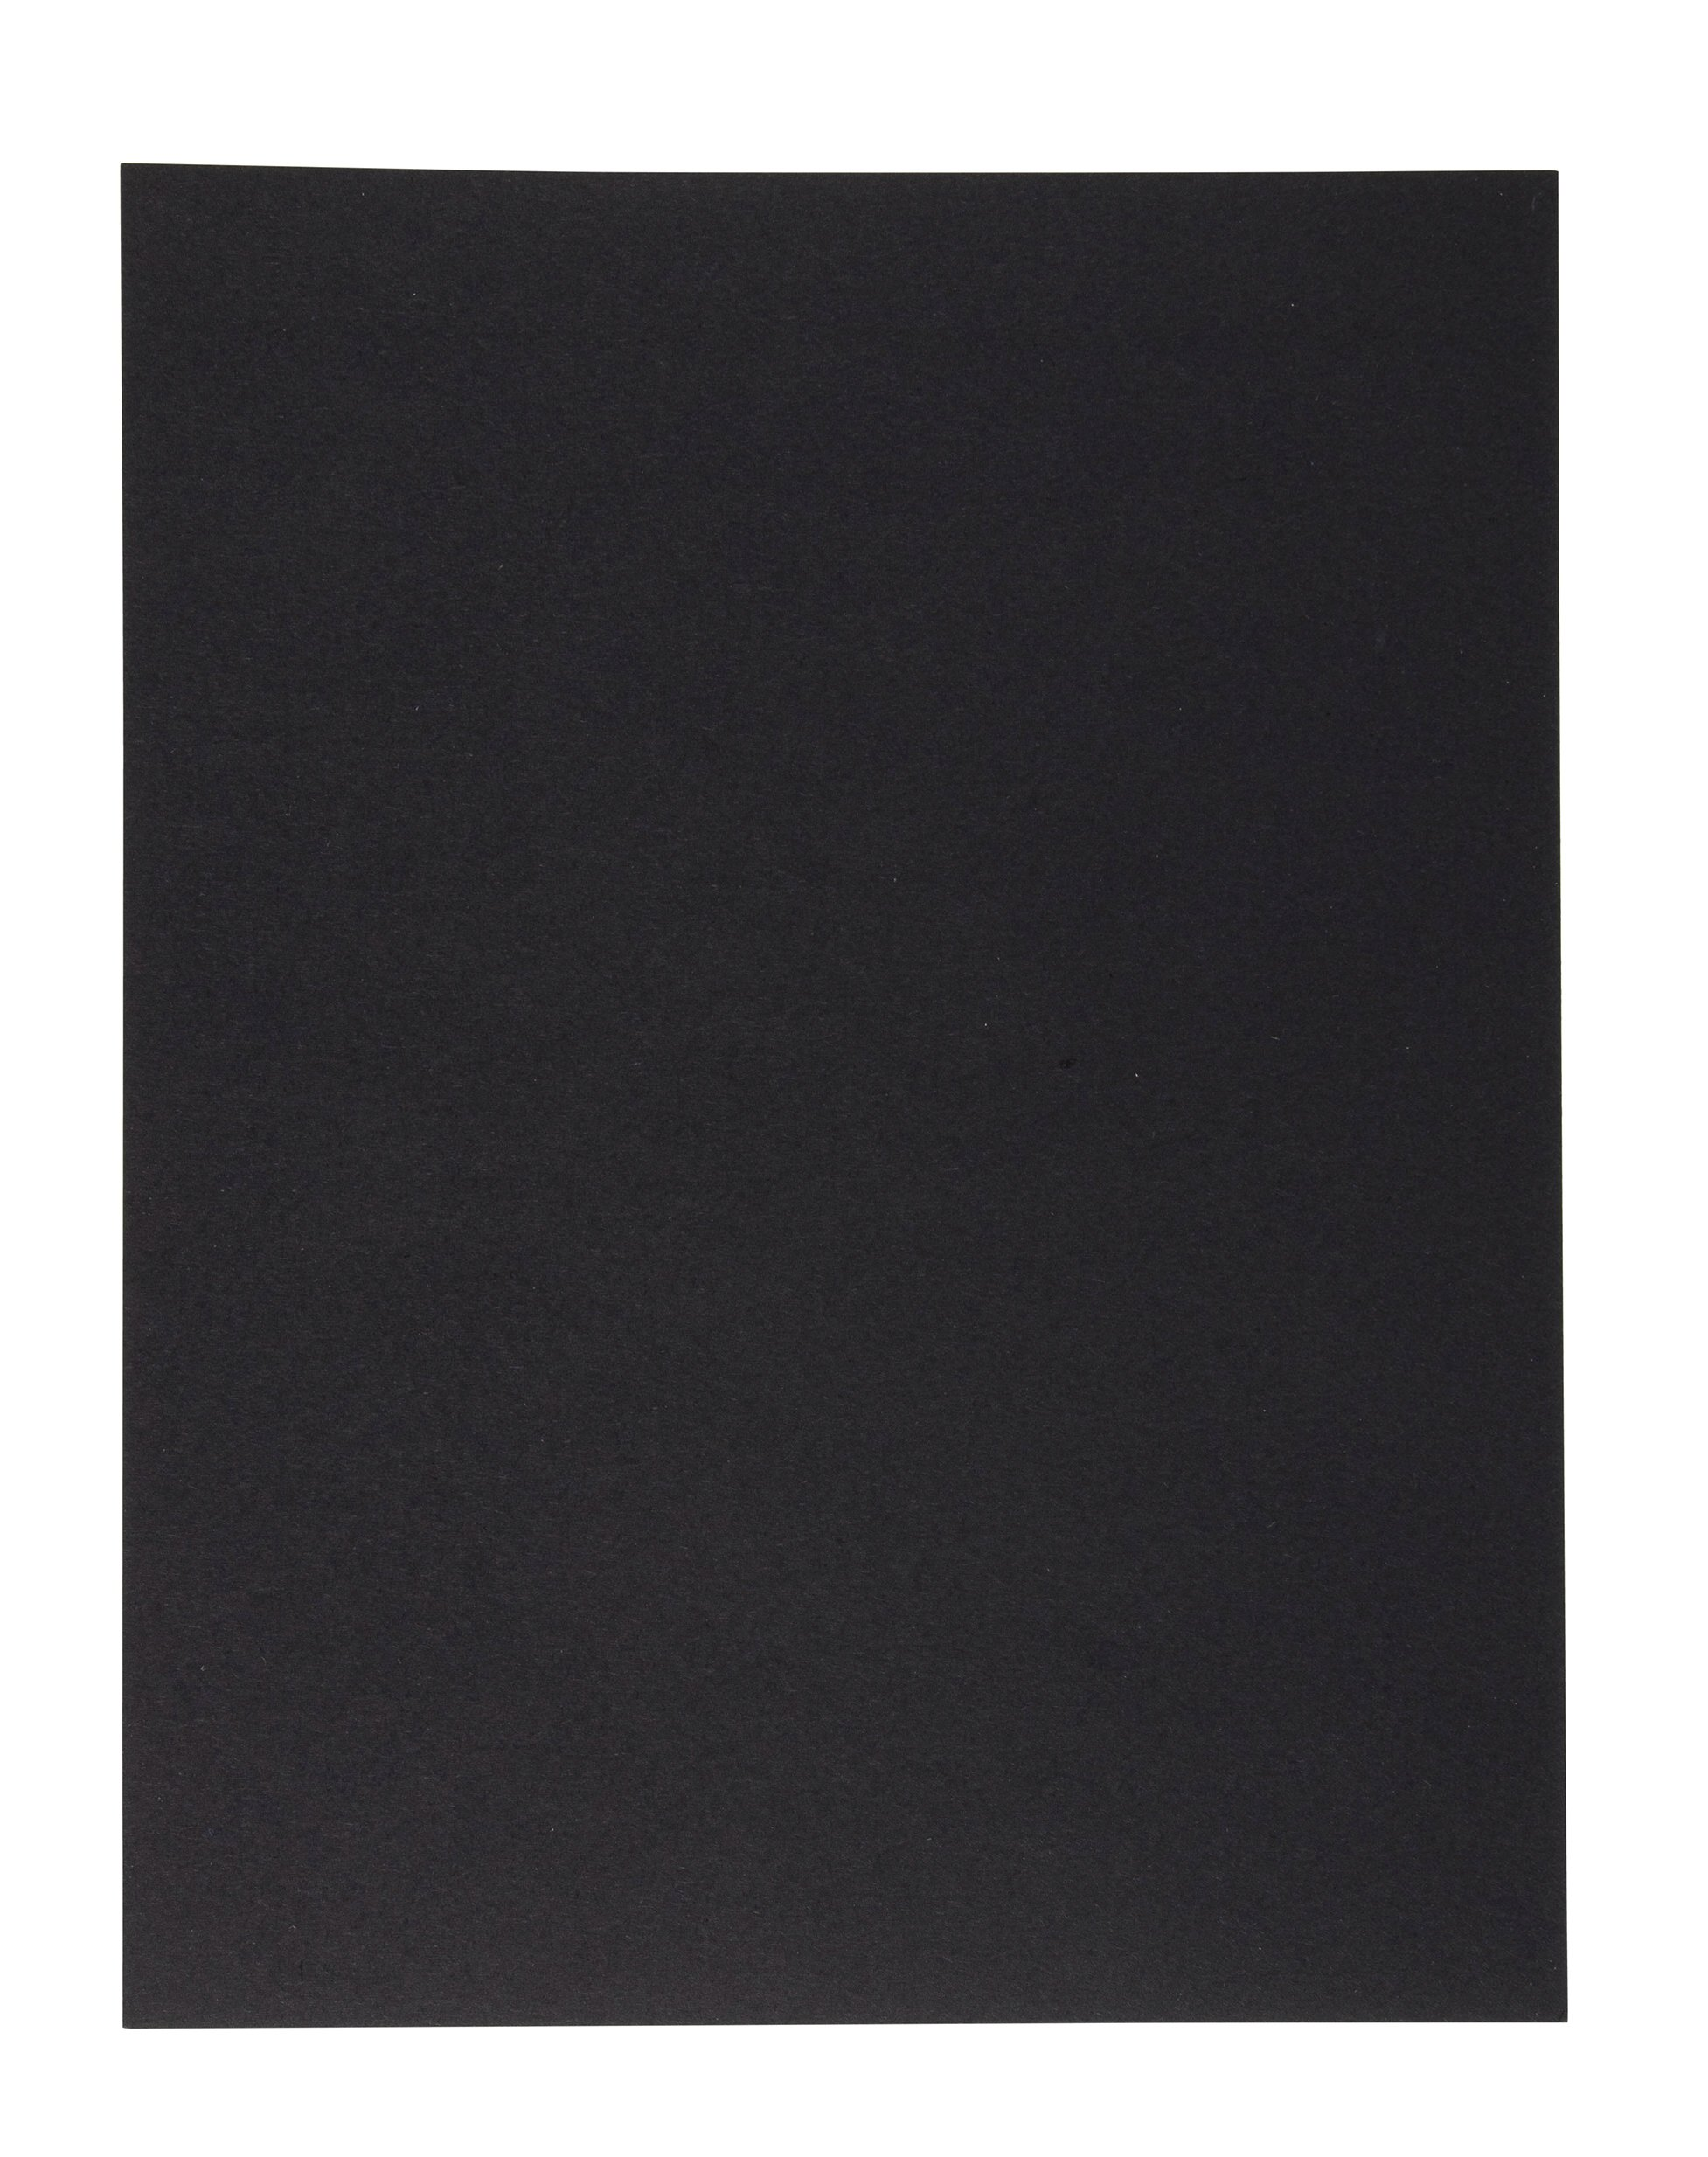 Binding Presentation Cover - 50-Pack Report Cover Paper, Letter Sized Cardstock Paper for Business Documents, School Projects, Un-Punched, 300GSM, Black, 8.5 x 11 inches by Best Paper Greetings (Image #2)